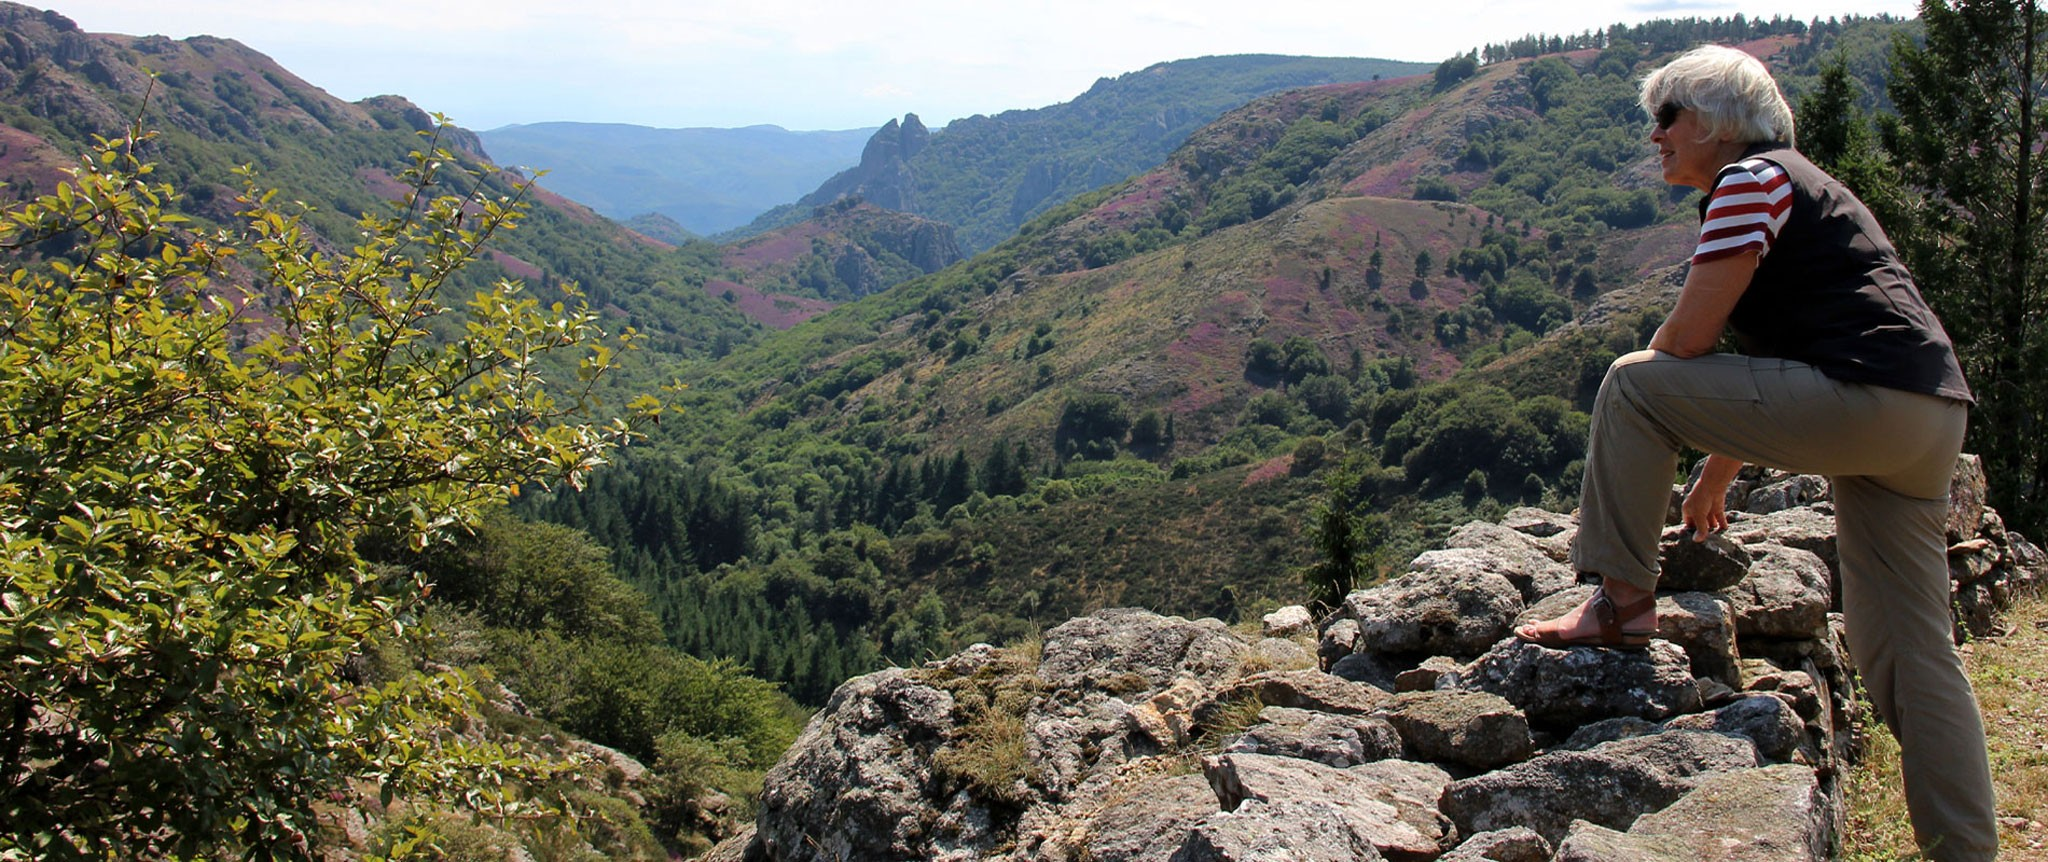 photos Haut Languedoc. Regards sur la montagne